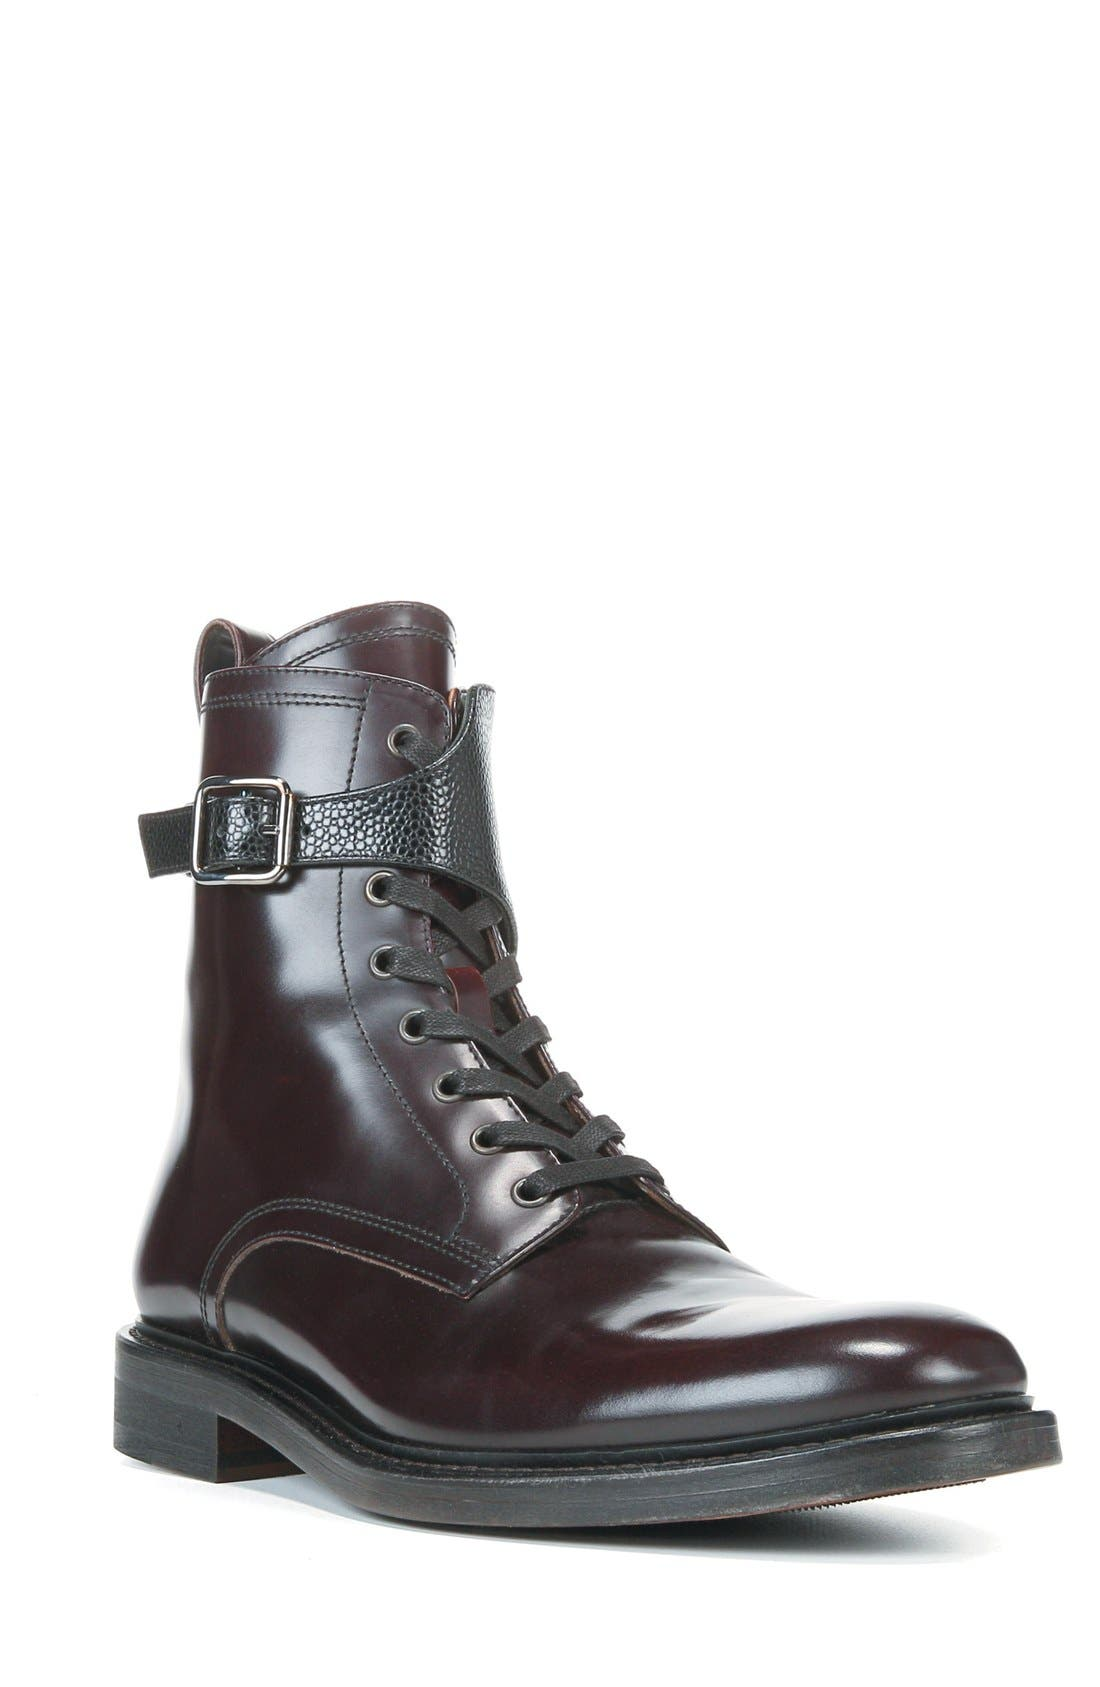 GEORGE BROWN BILT 'Fulton' Lace-Up Boot